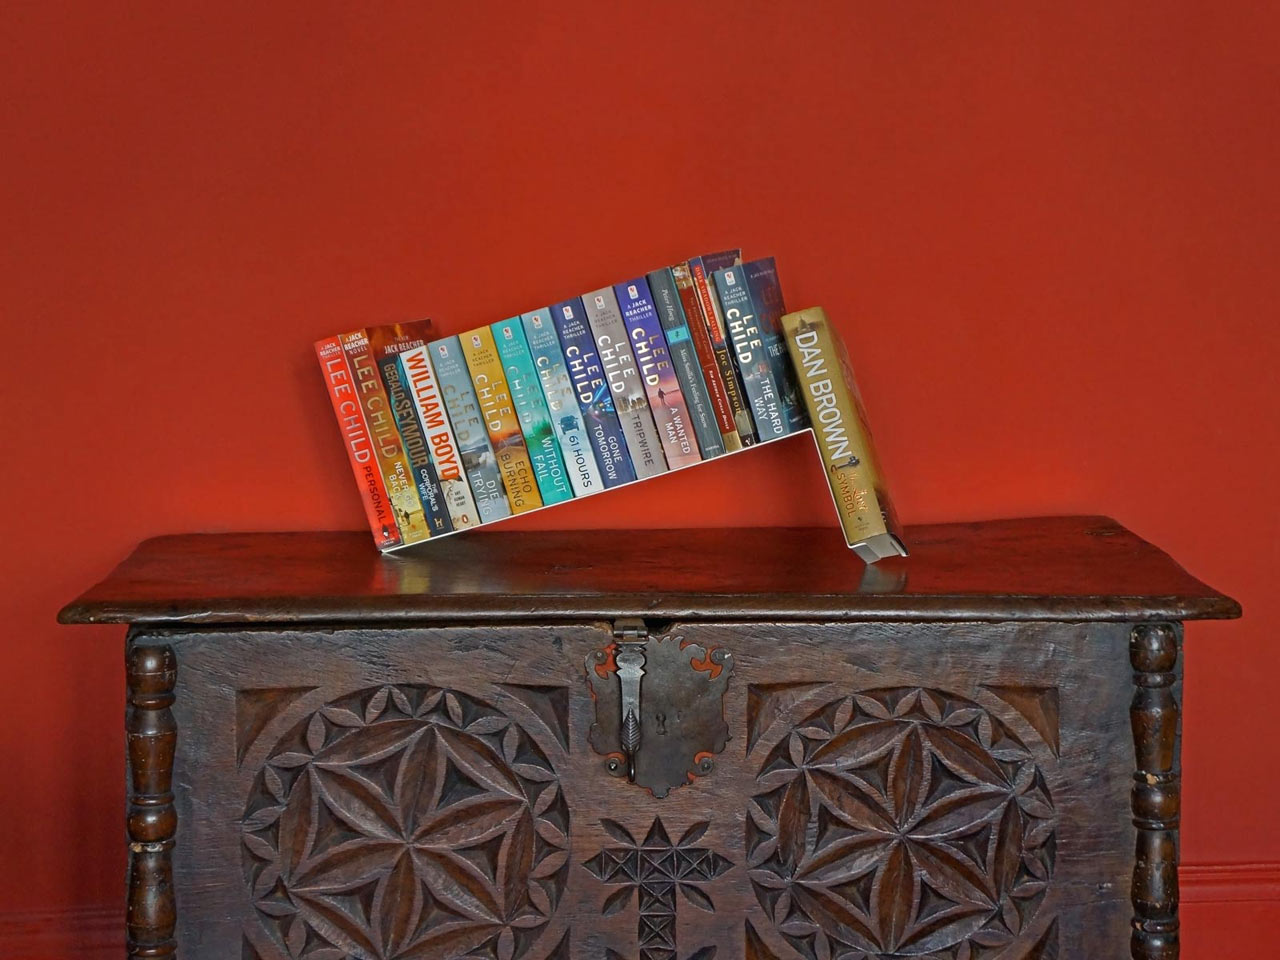 Turn Your Books into a Sculptural Feature